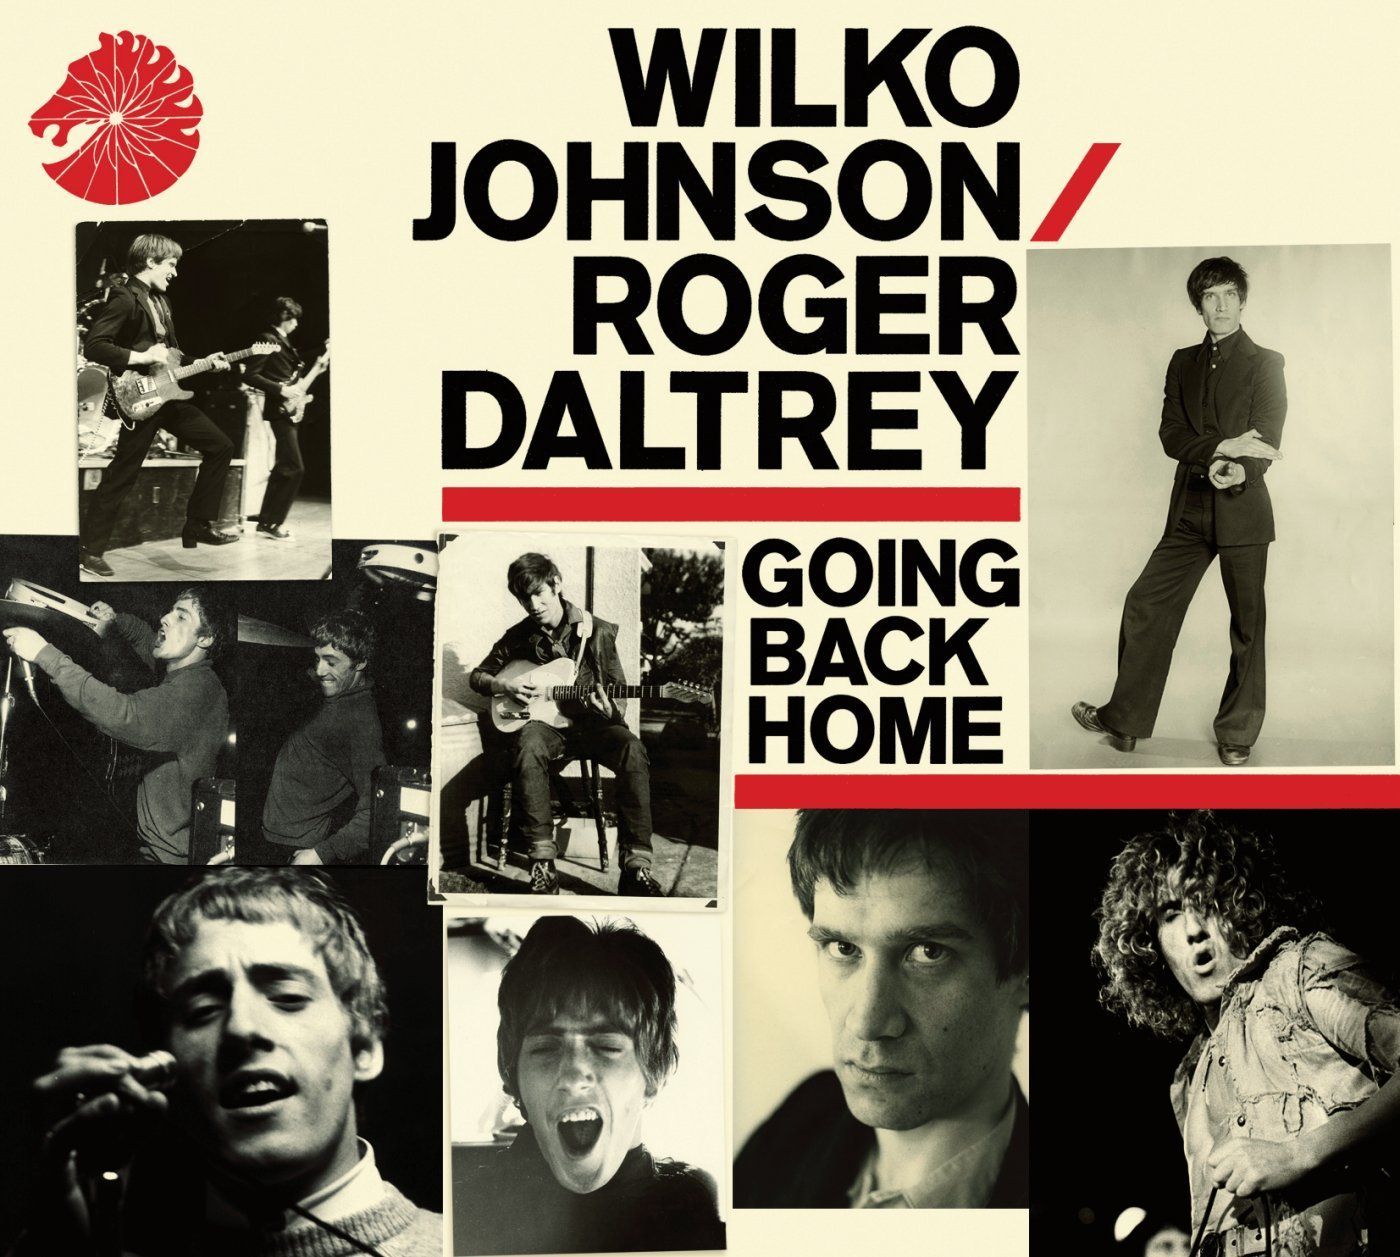 Wilko Johnson and Roger Daltrey